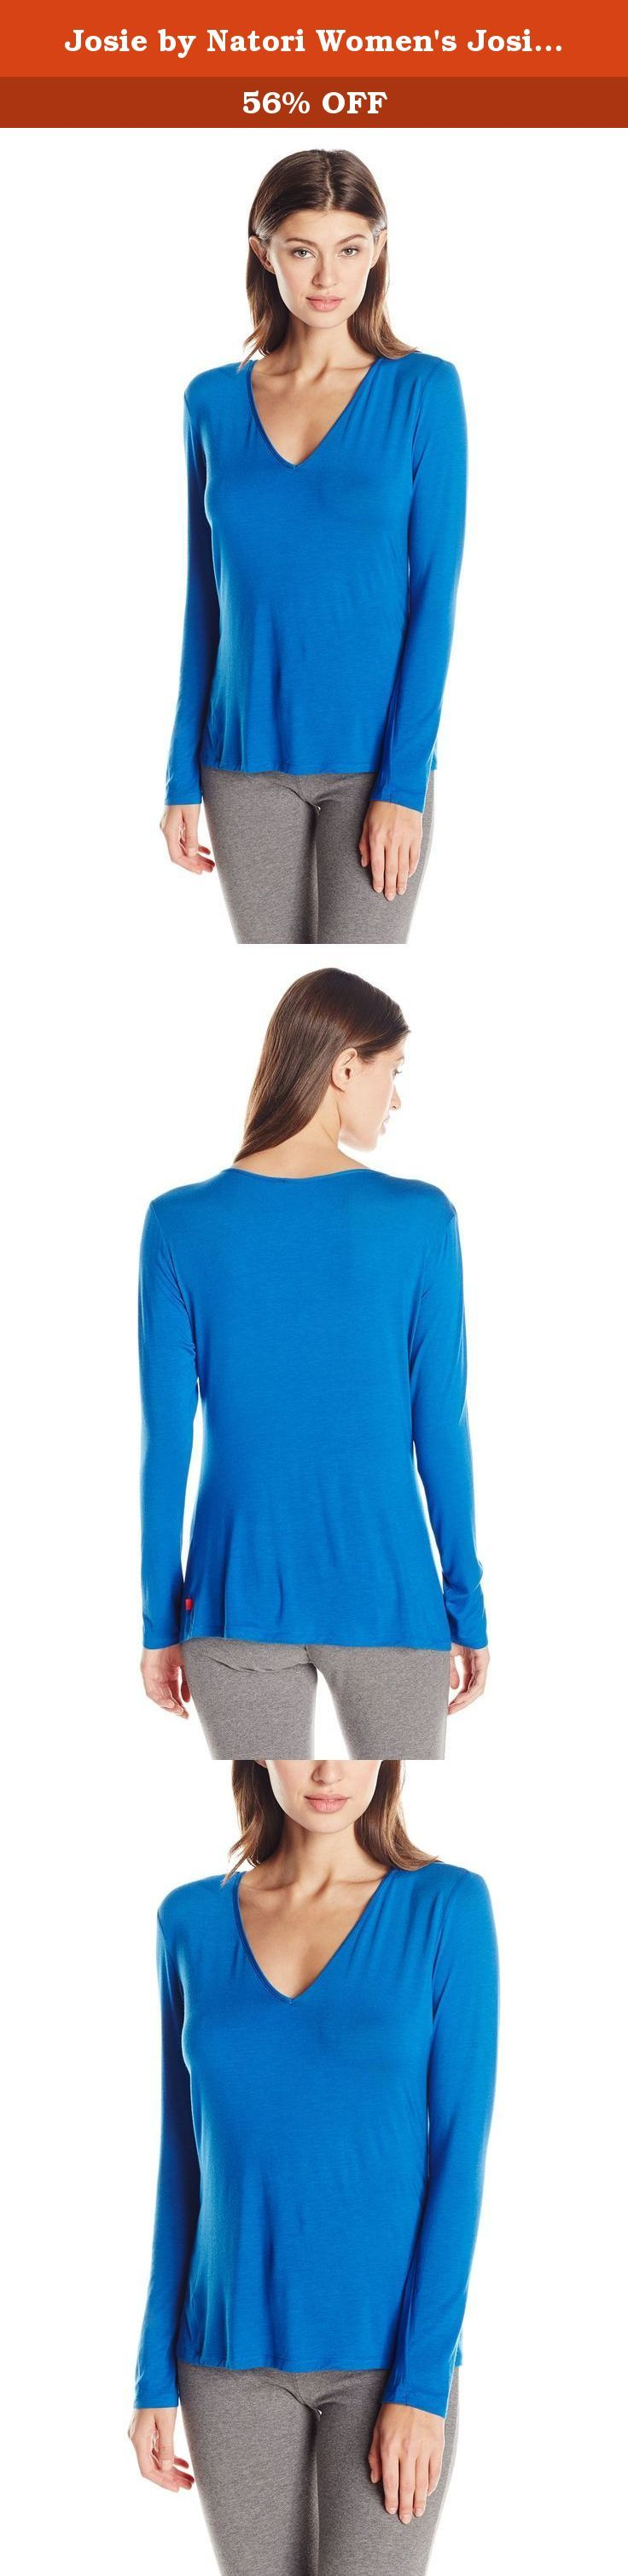 Josie by Natori Women's Josie Tees Long Sleeve Pajama Top, Festive Blue, Small. Ultra-soft jersey rest easy long sleeve V-neck top.